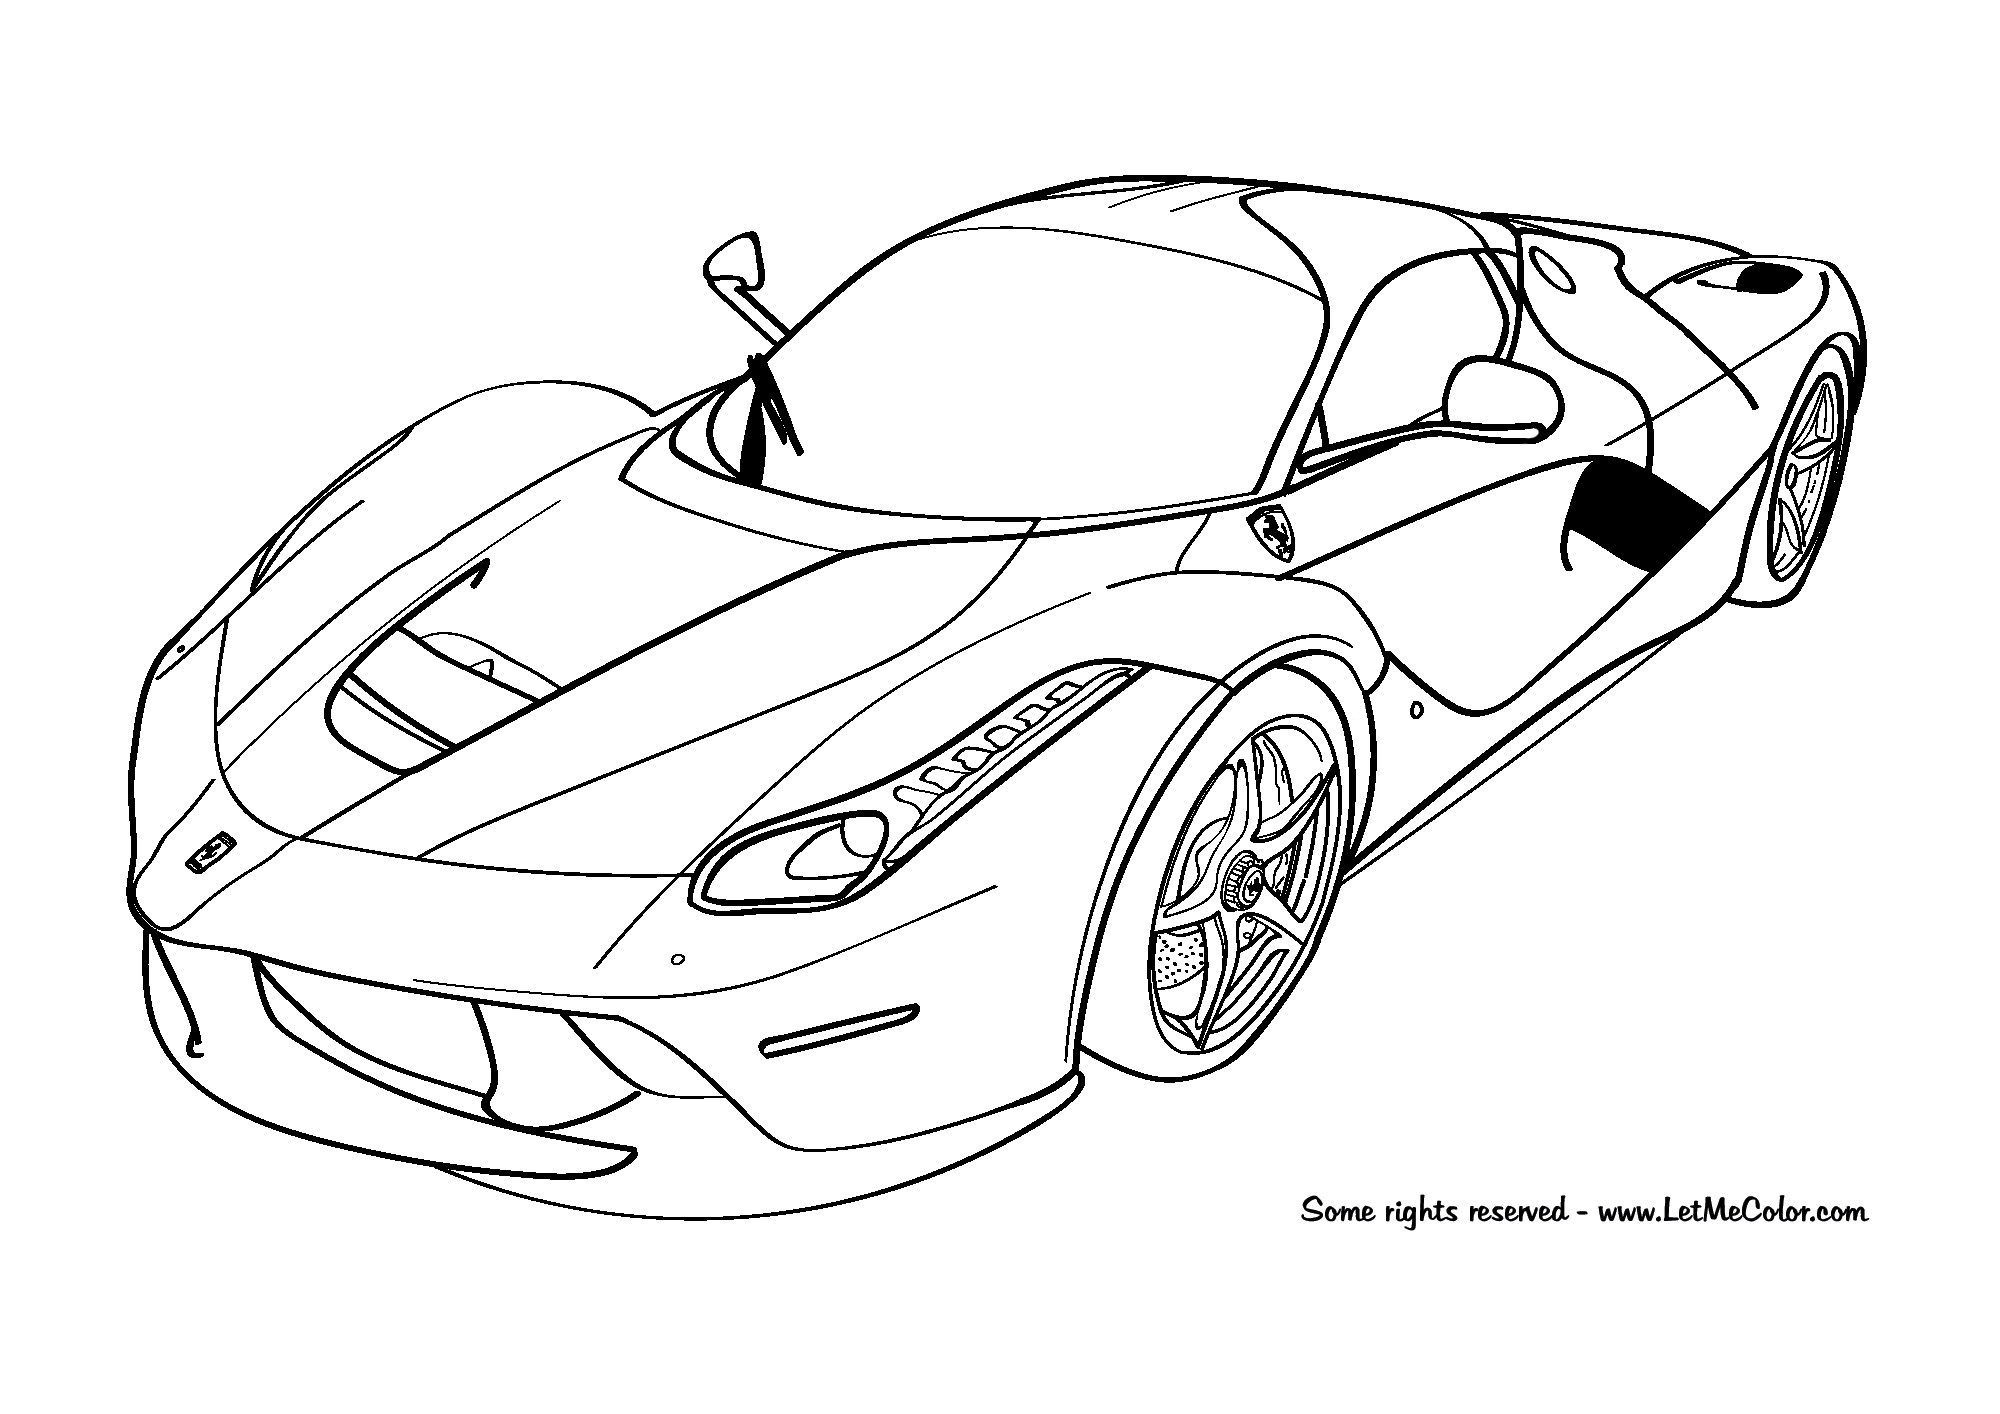 2000x1414 Super Car Buggati Veyron Coloring Page Luxury Drawn Car Bugatti